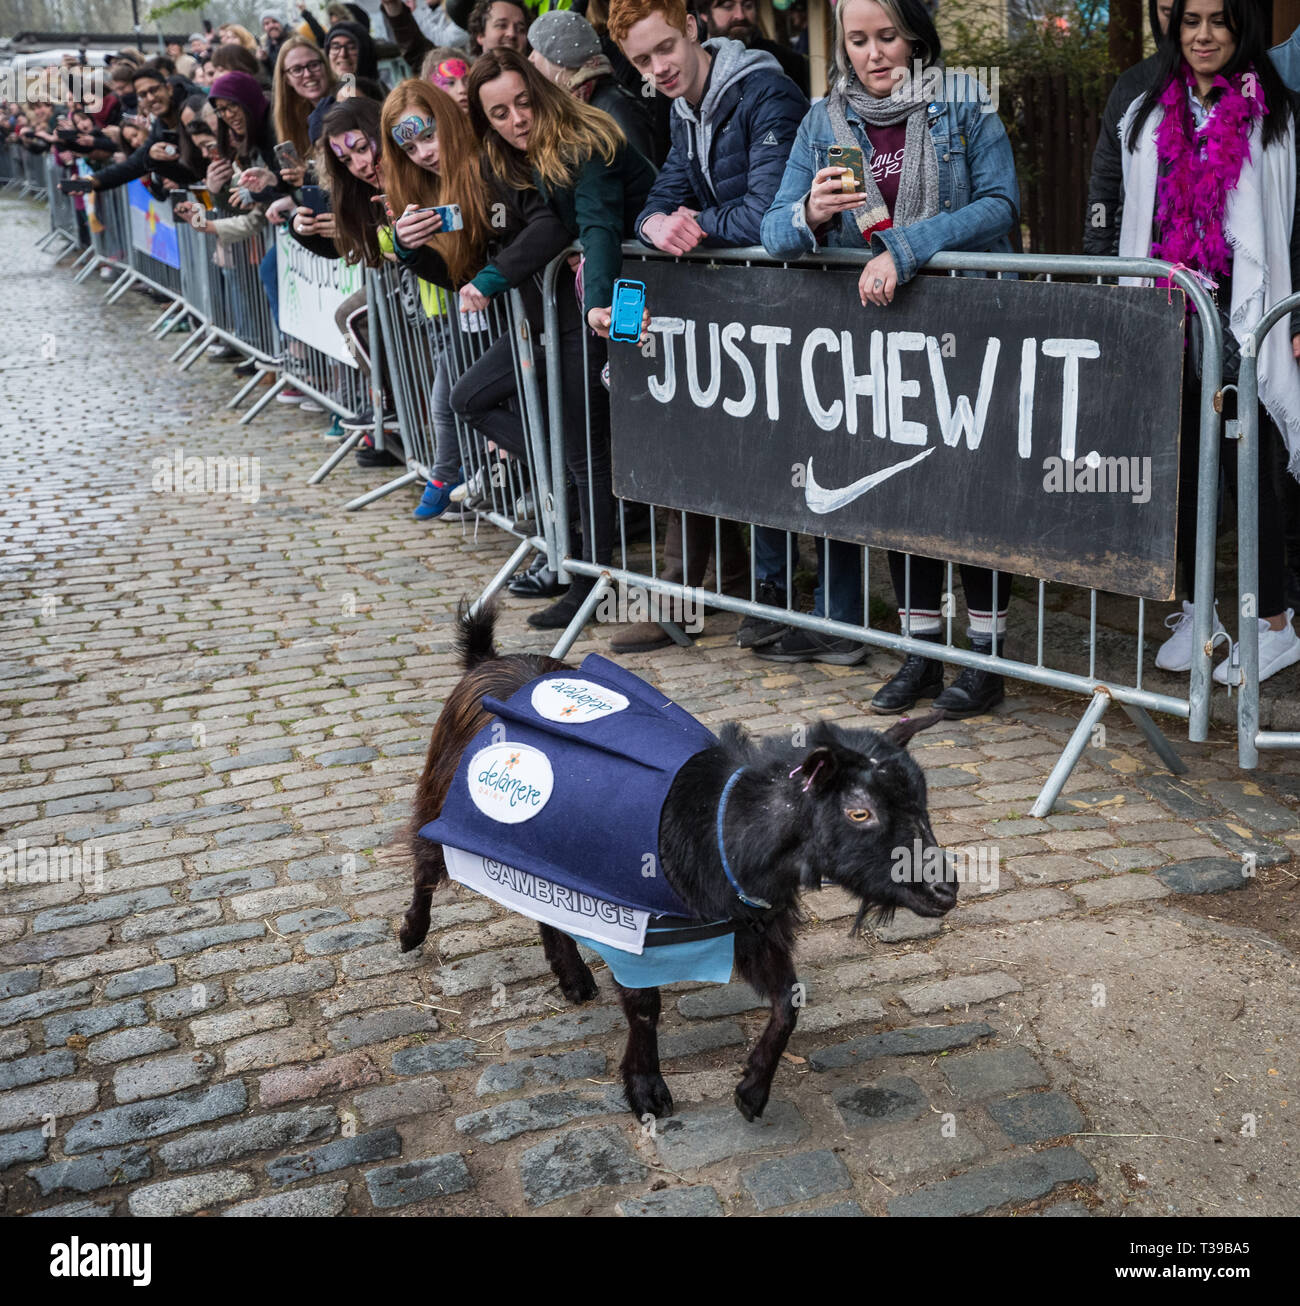 London, UK. 7th April, 2019. 11th Annual Oxford vs Cambridge Goat Race at Spitalfields City Farm in east London. Credit: Guy Corbishley/Alamy Live New - Stock Image